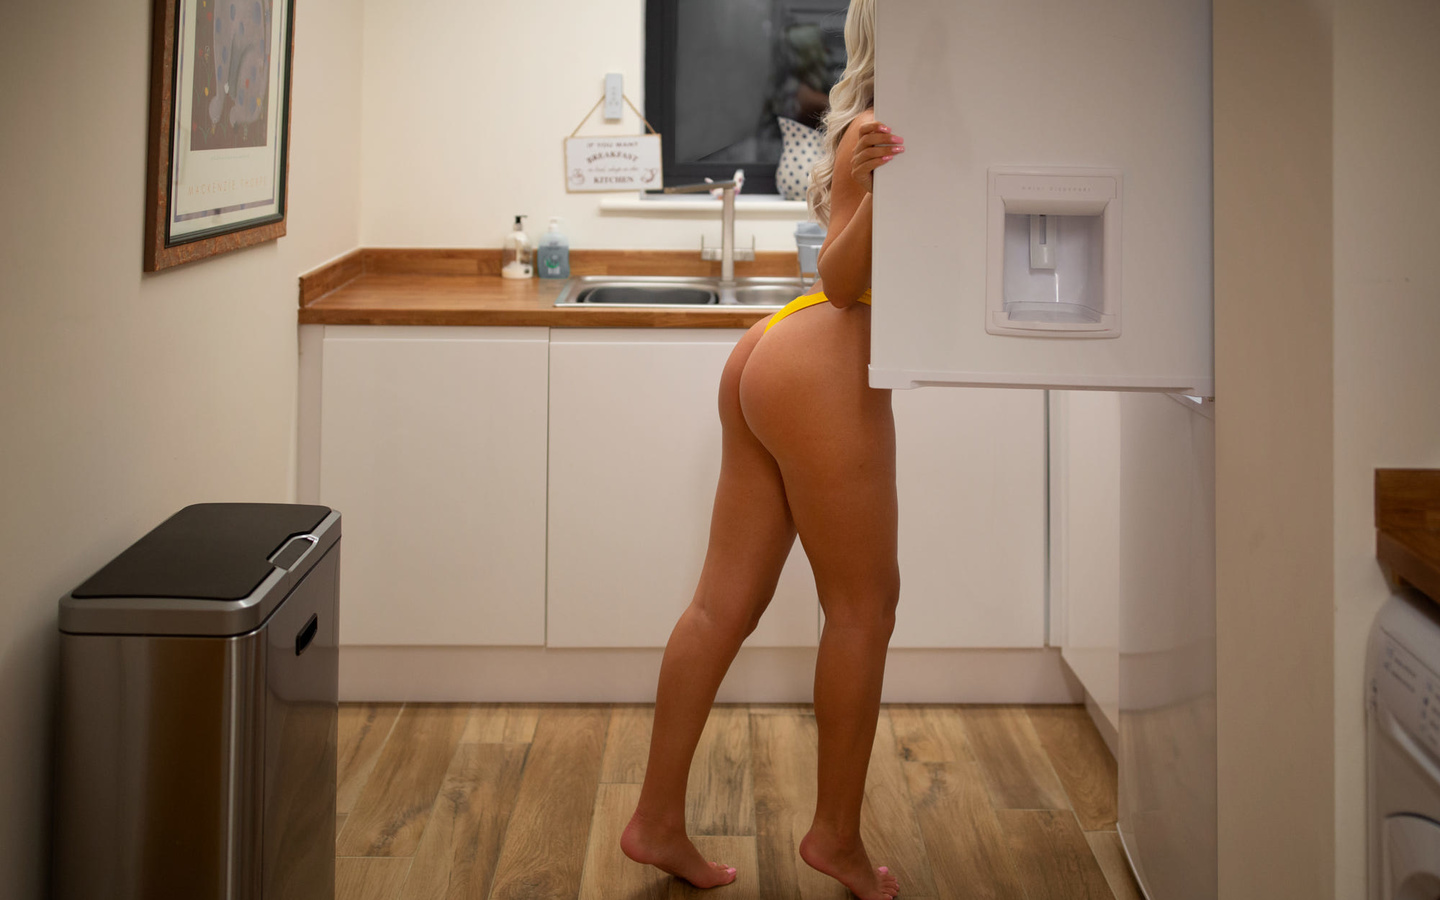 women, ass, brunette, blonde, fridge, kitchen, women indoors, pink nails, yellow panties